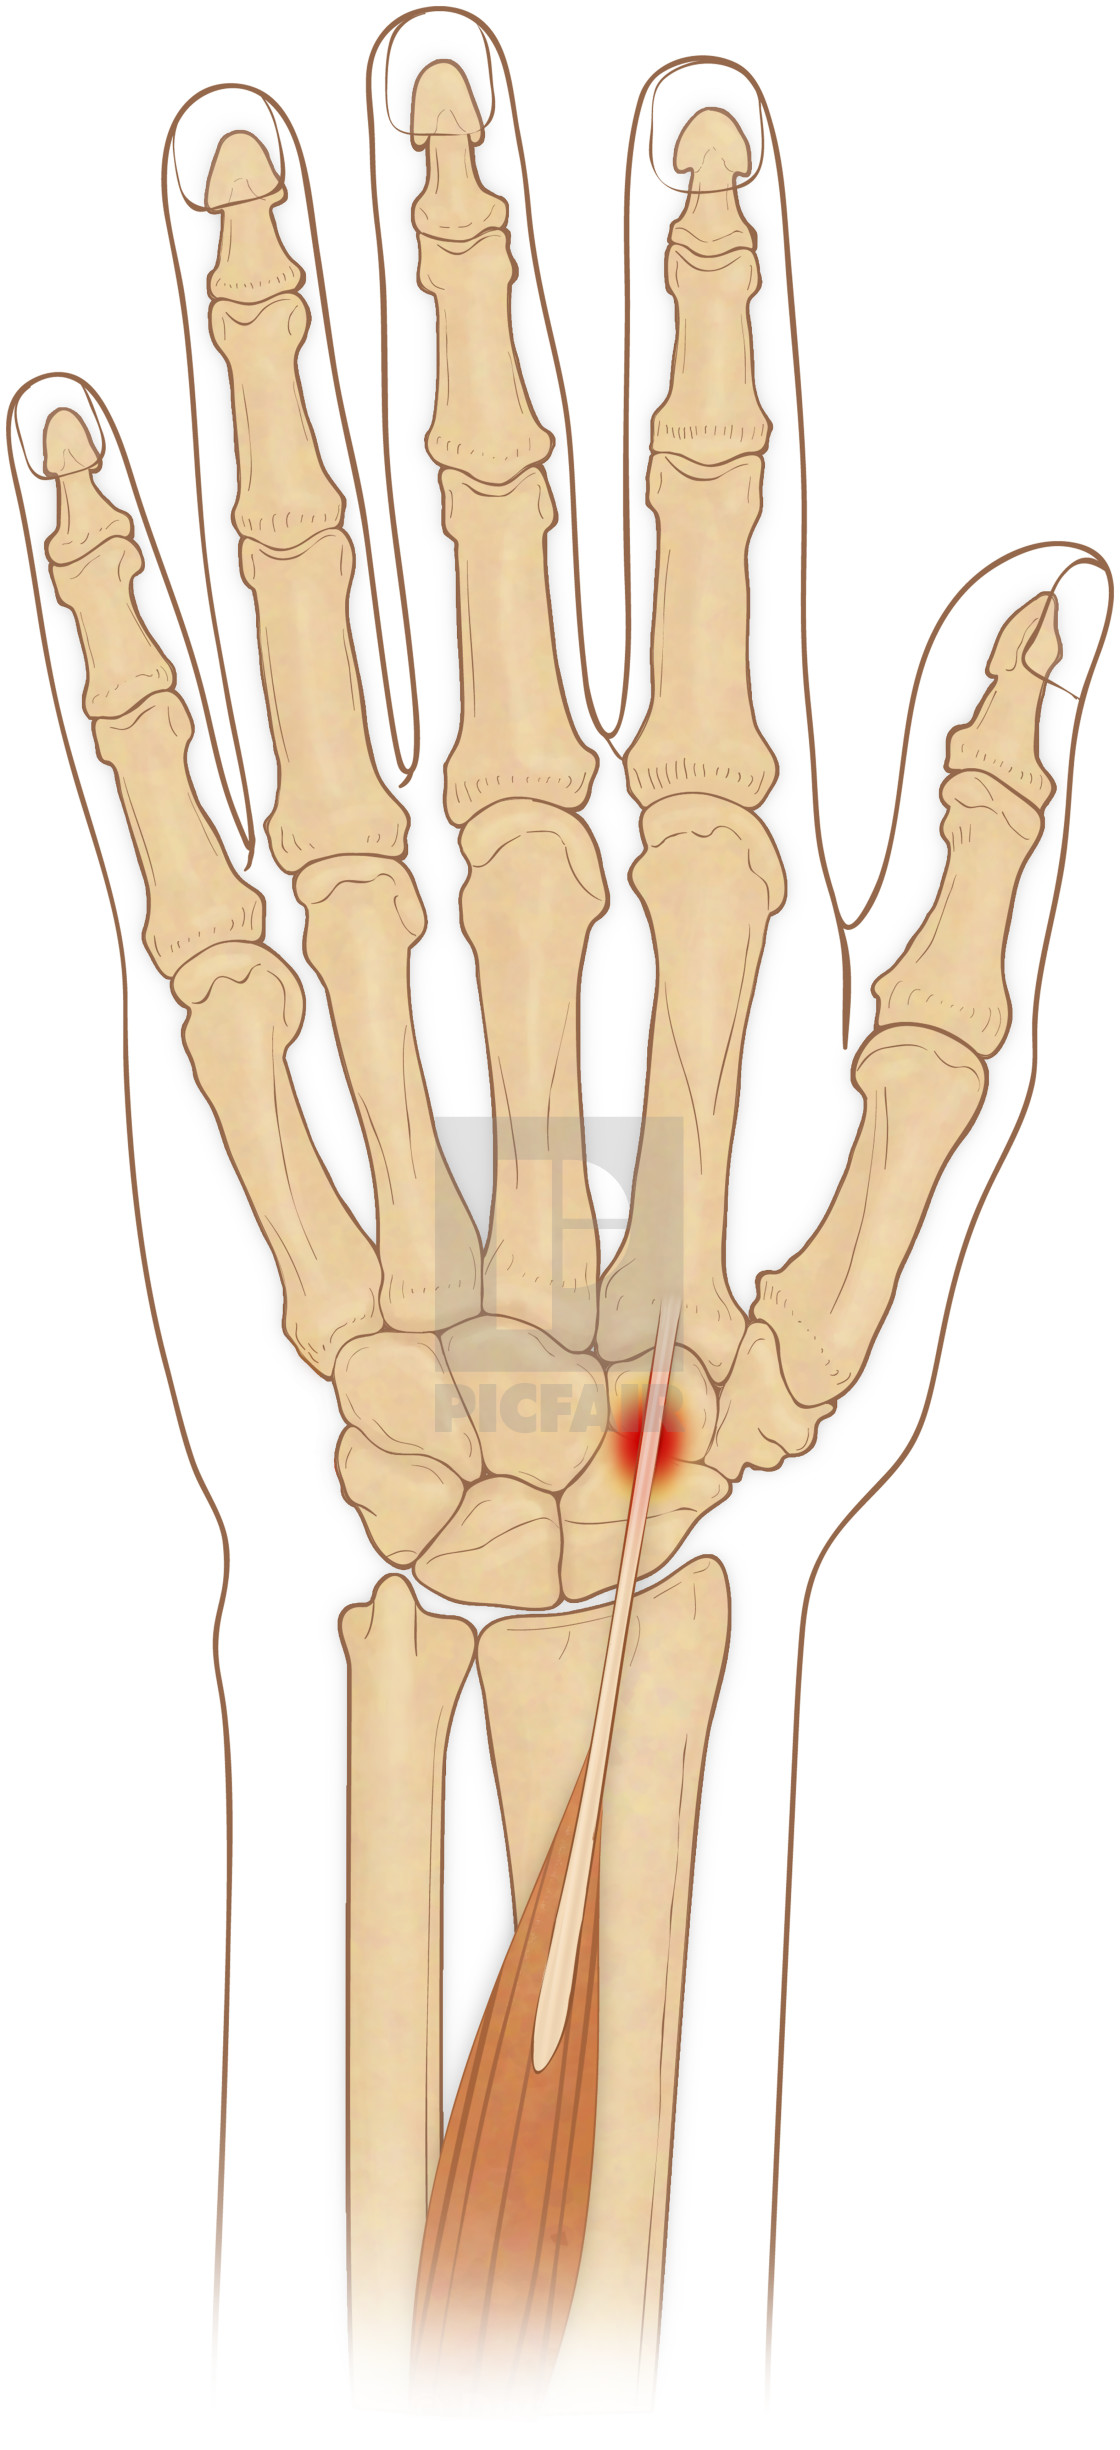 anterior view of hand bones with inflammed extensor carpi radialis